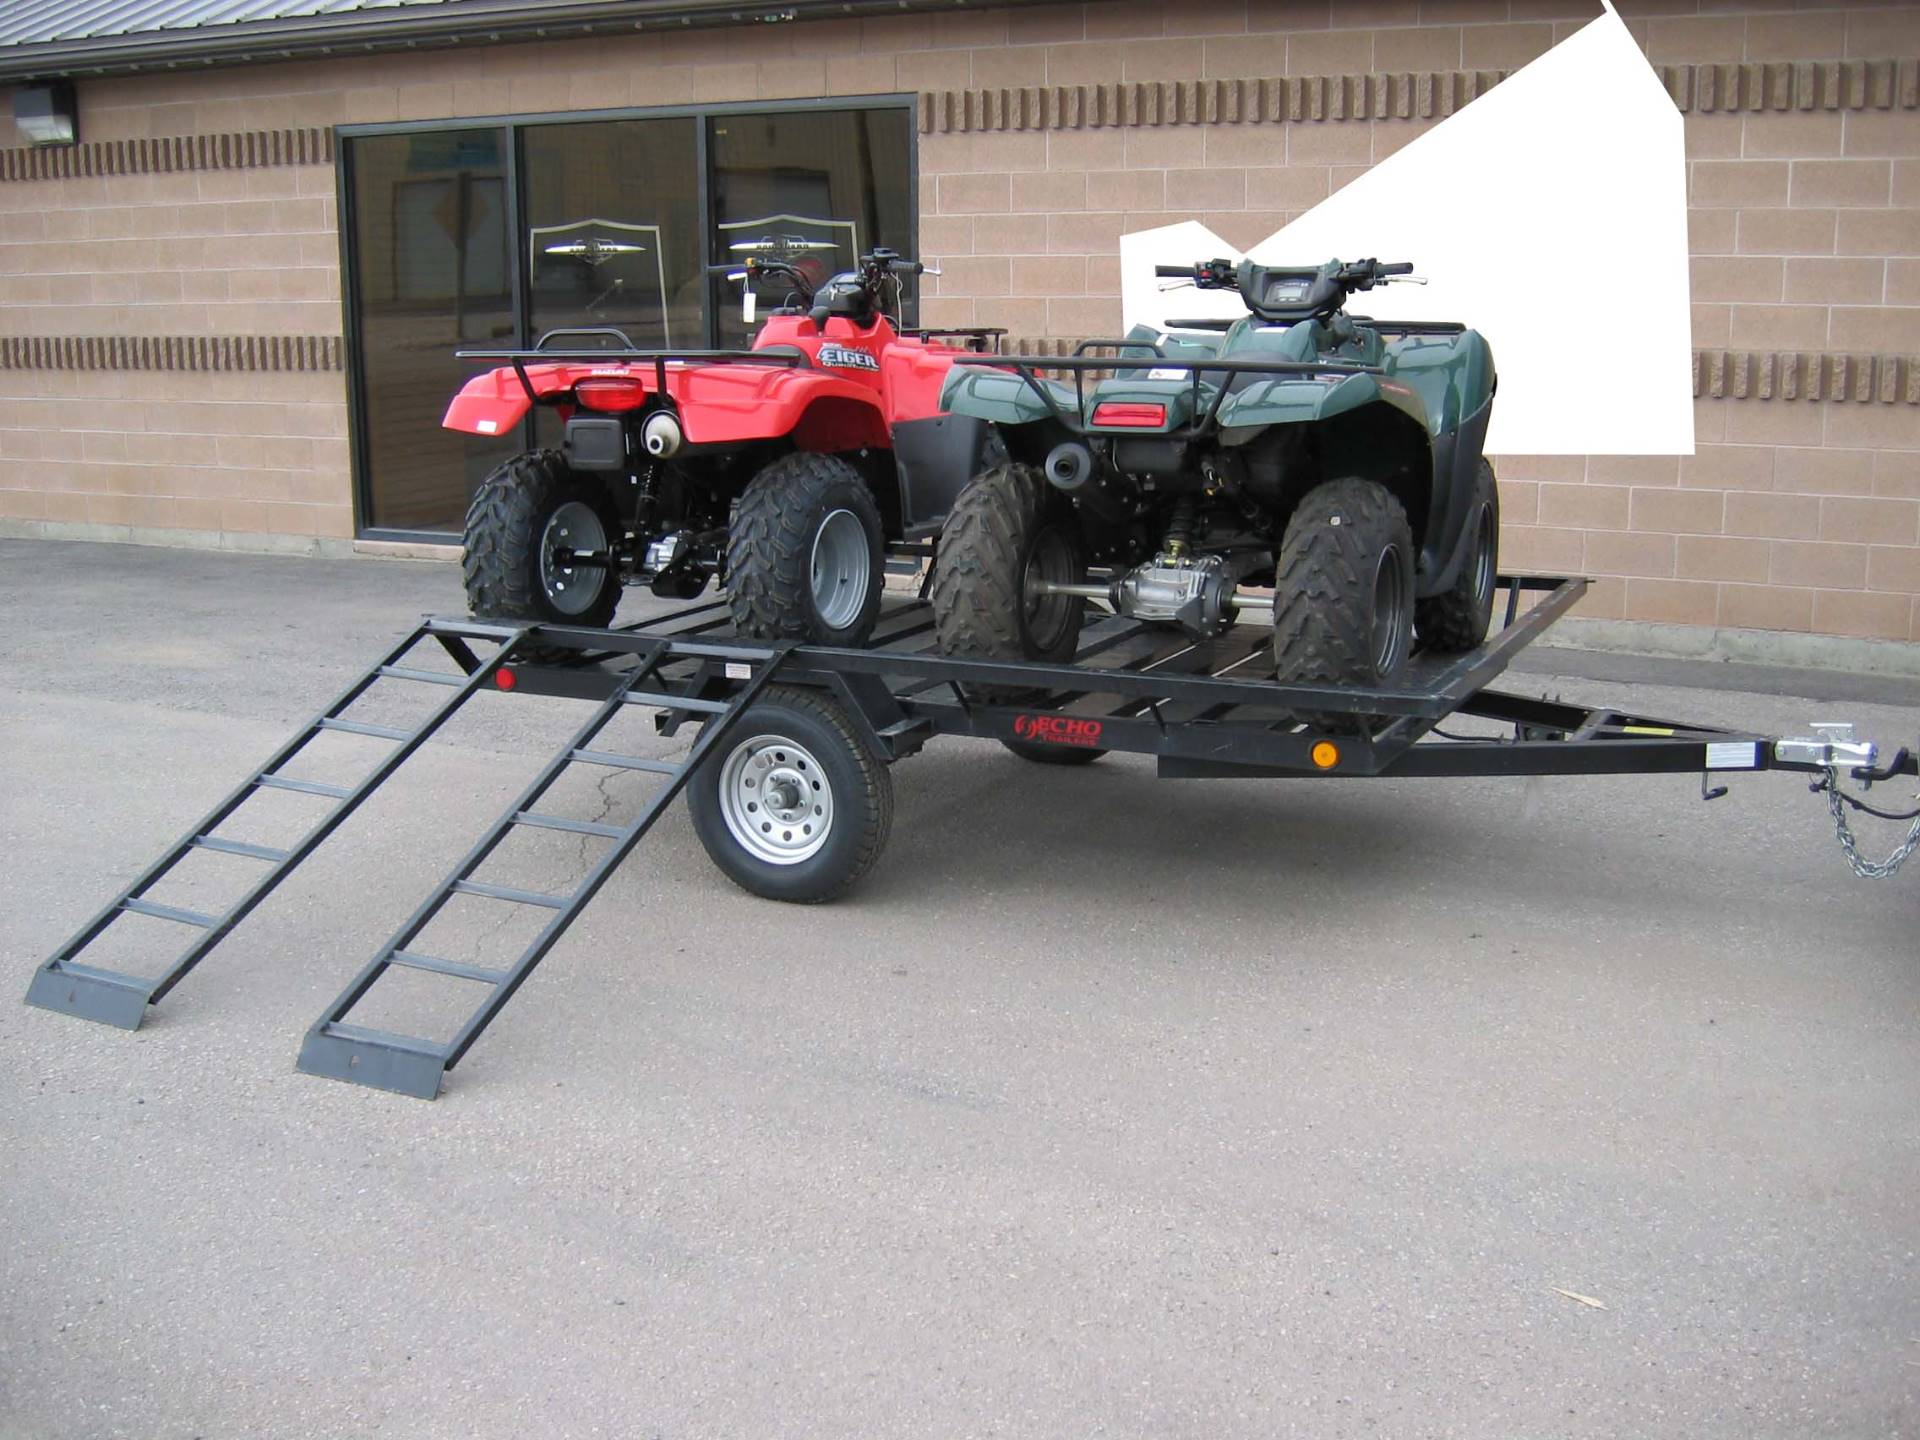 New 2020 Echo Trailers 2 Place Extra Wide Atv 1 Place Utv Trailer Trailers In Spearfish Sd Stock Number Ech